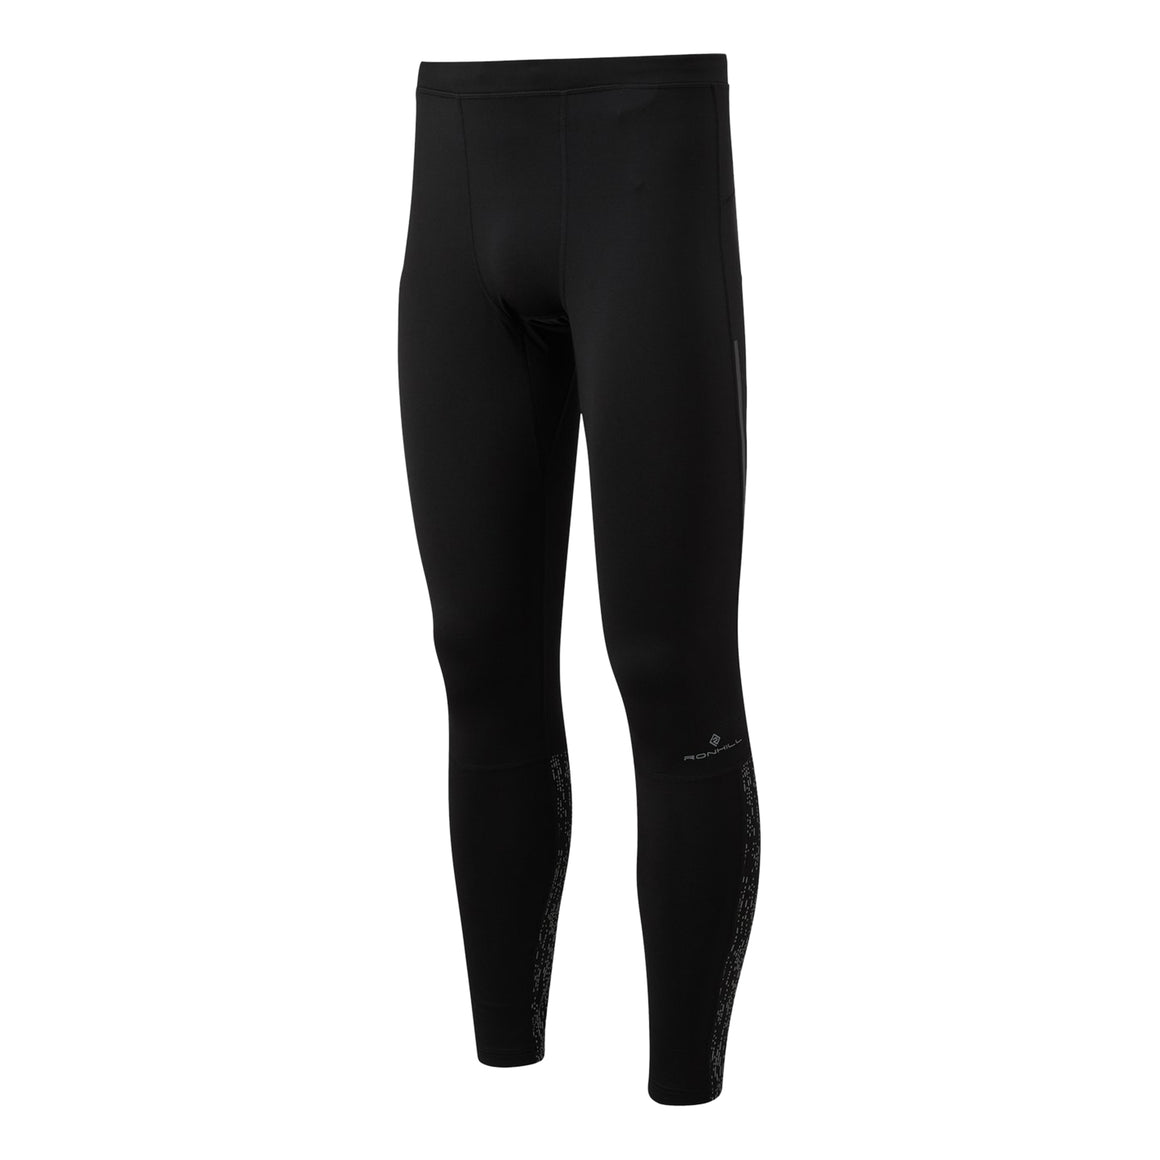 Life Night Runner Tight for Men in Black Reflect